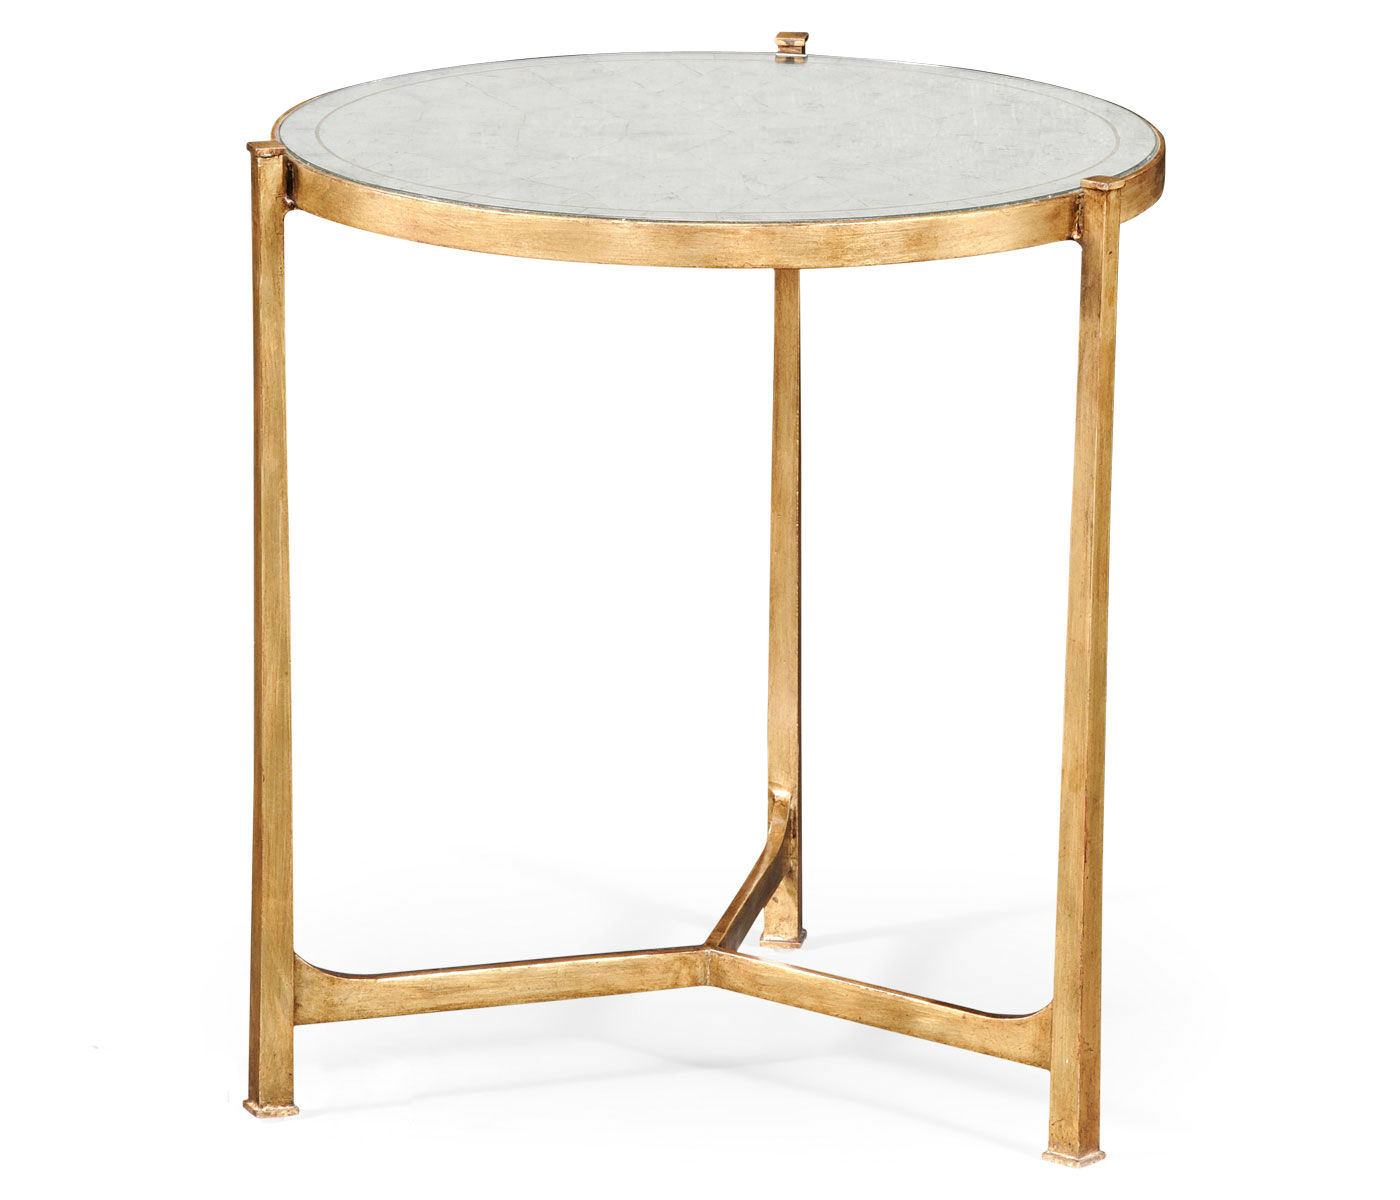 dewdrops side table gold metal with ideas birtansogutma tables end throughout prepare base accent target architecture high designer lamps marble tray foyer pedestal life blue